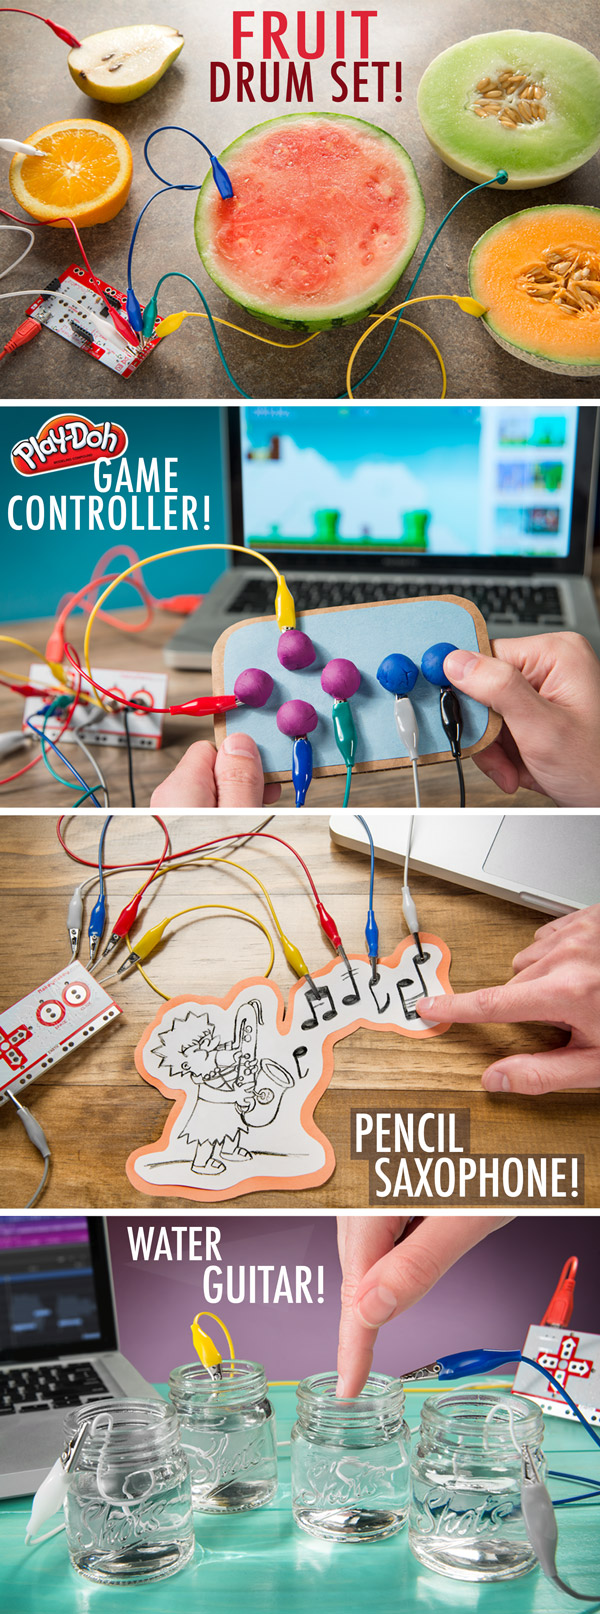 Examples of the Makey Makey in action.